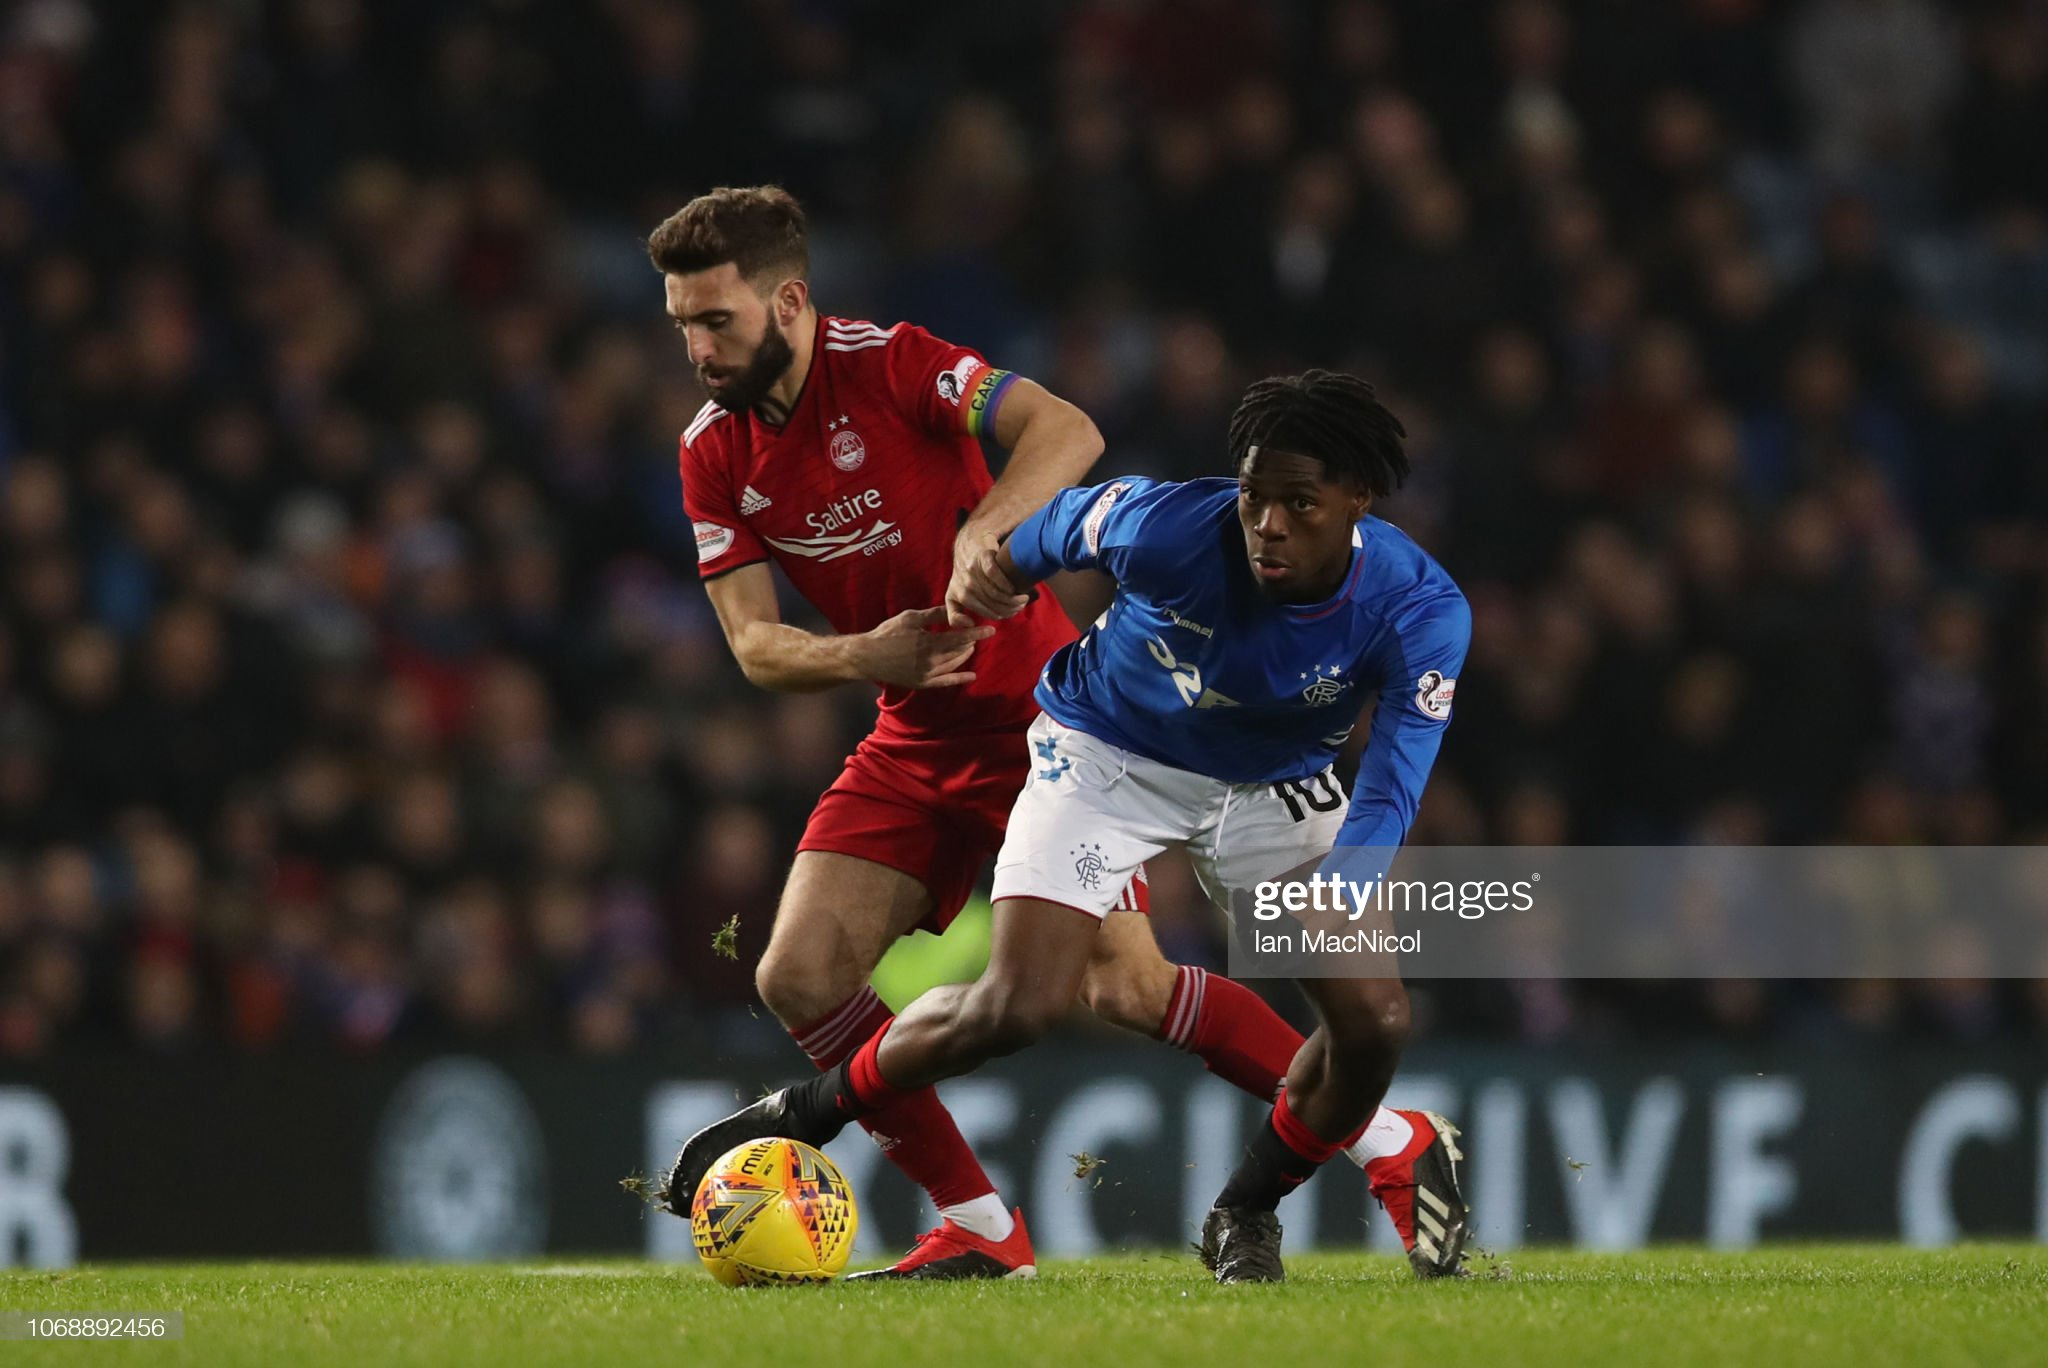 Rangers v Hearts preview, prediction and odds